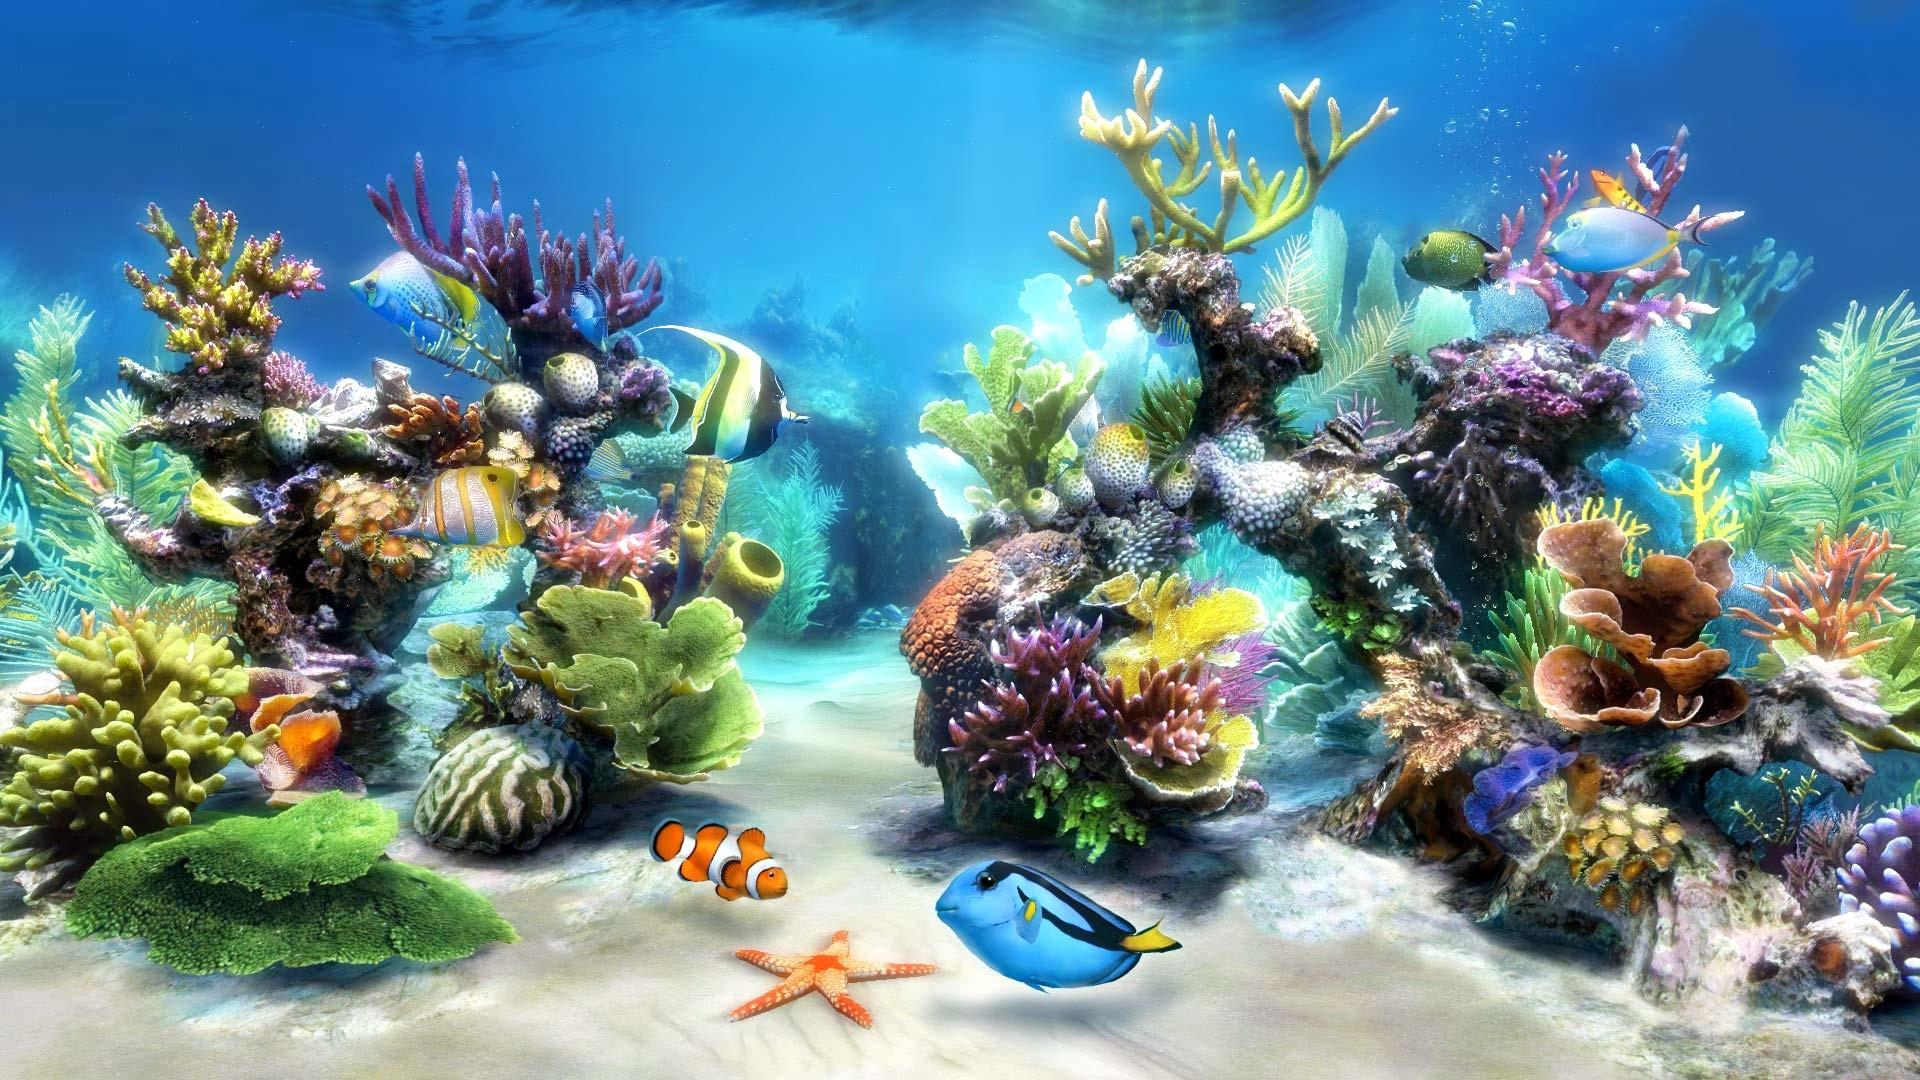 Fish Live Wallpaper Hd Live Wallpaper Windows 7 Aquarium